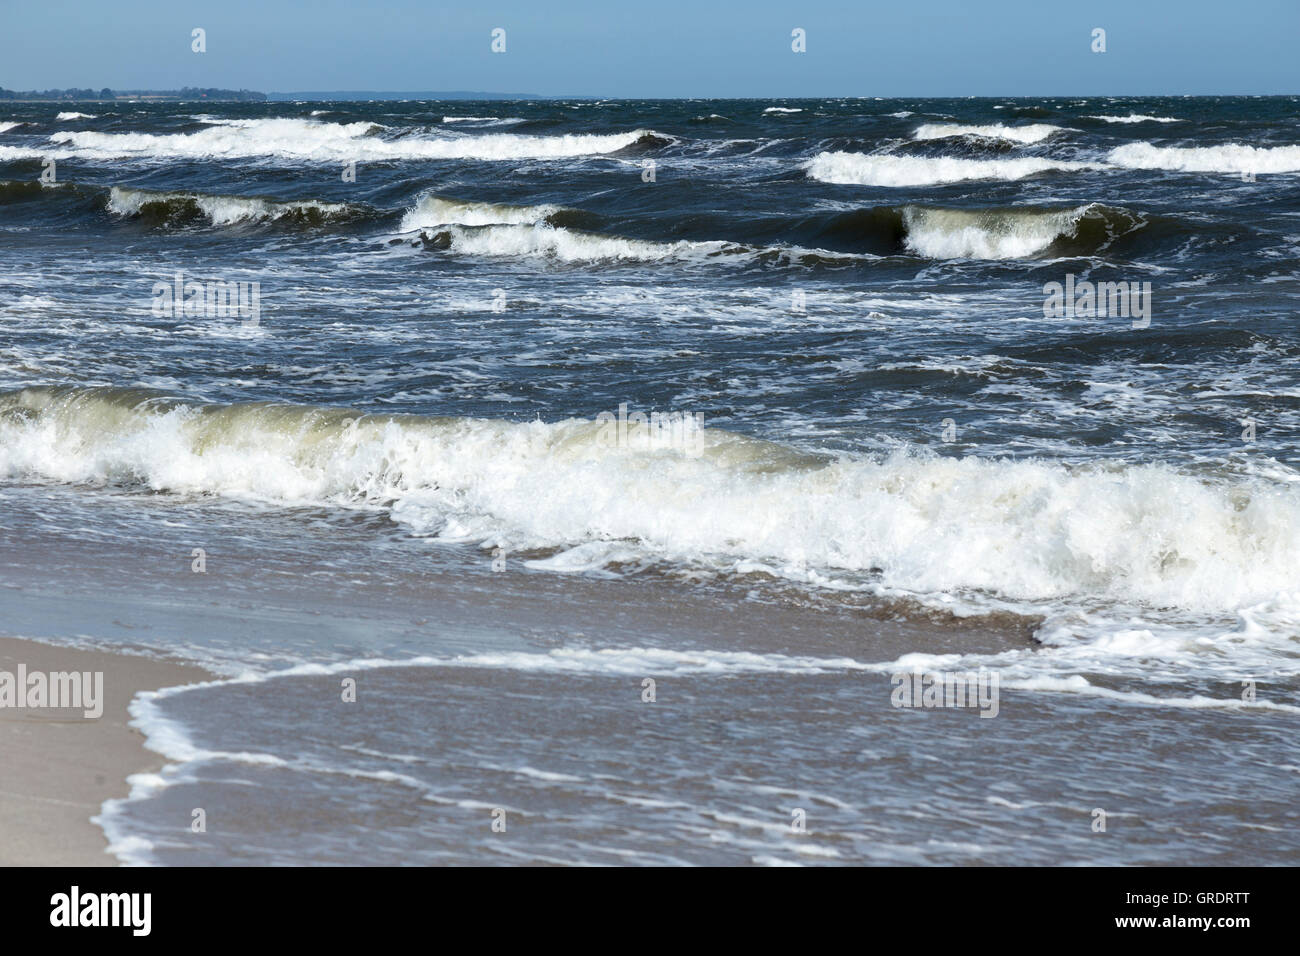 High Waves Of The Baltic Sea On The Beach Of Marielyst - Stock Image